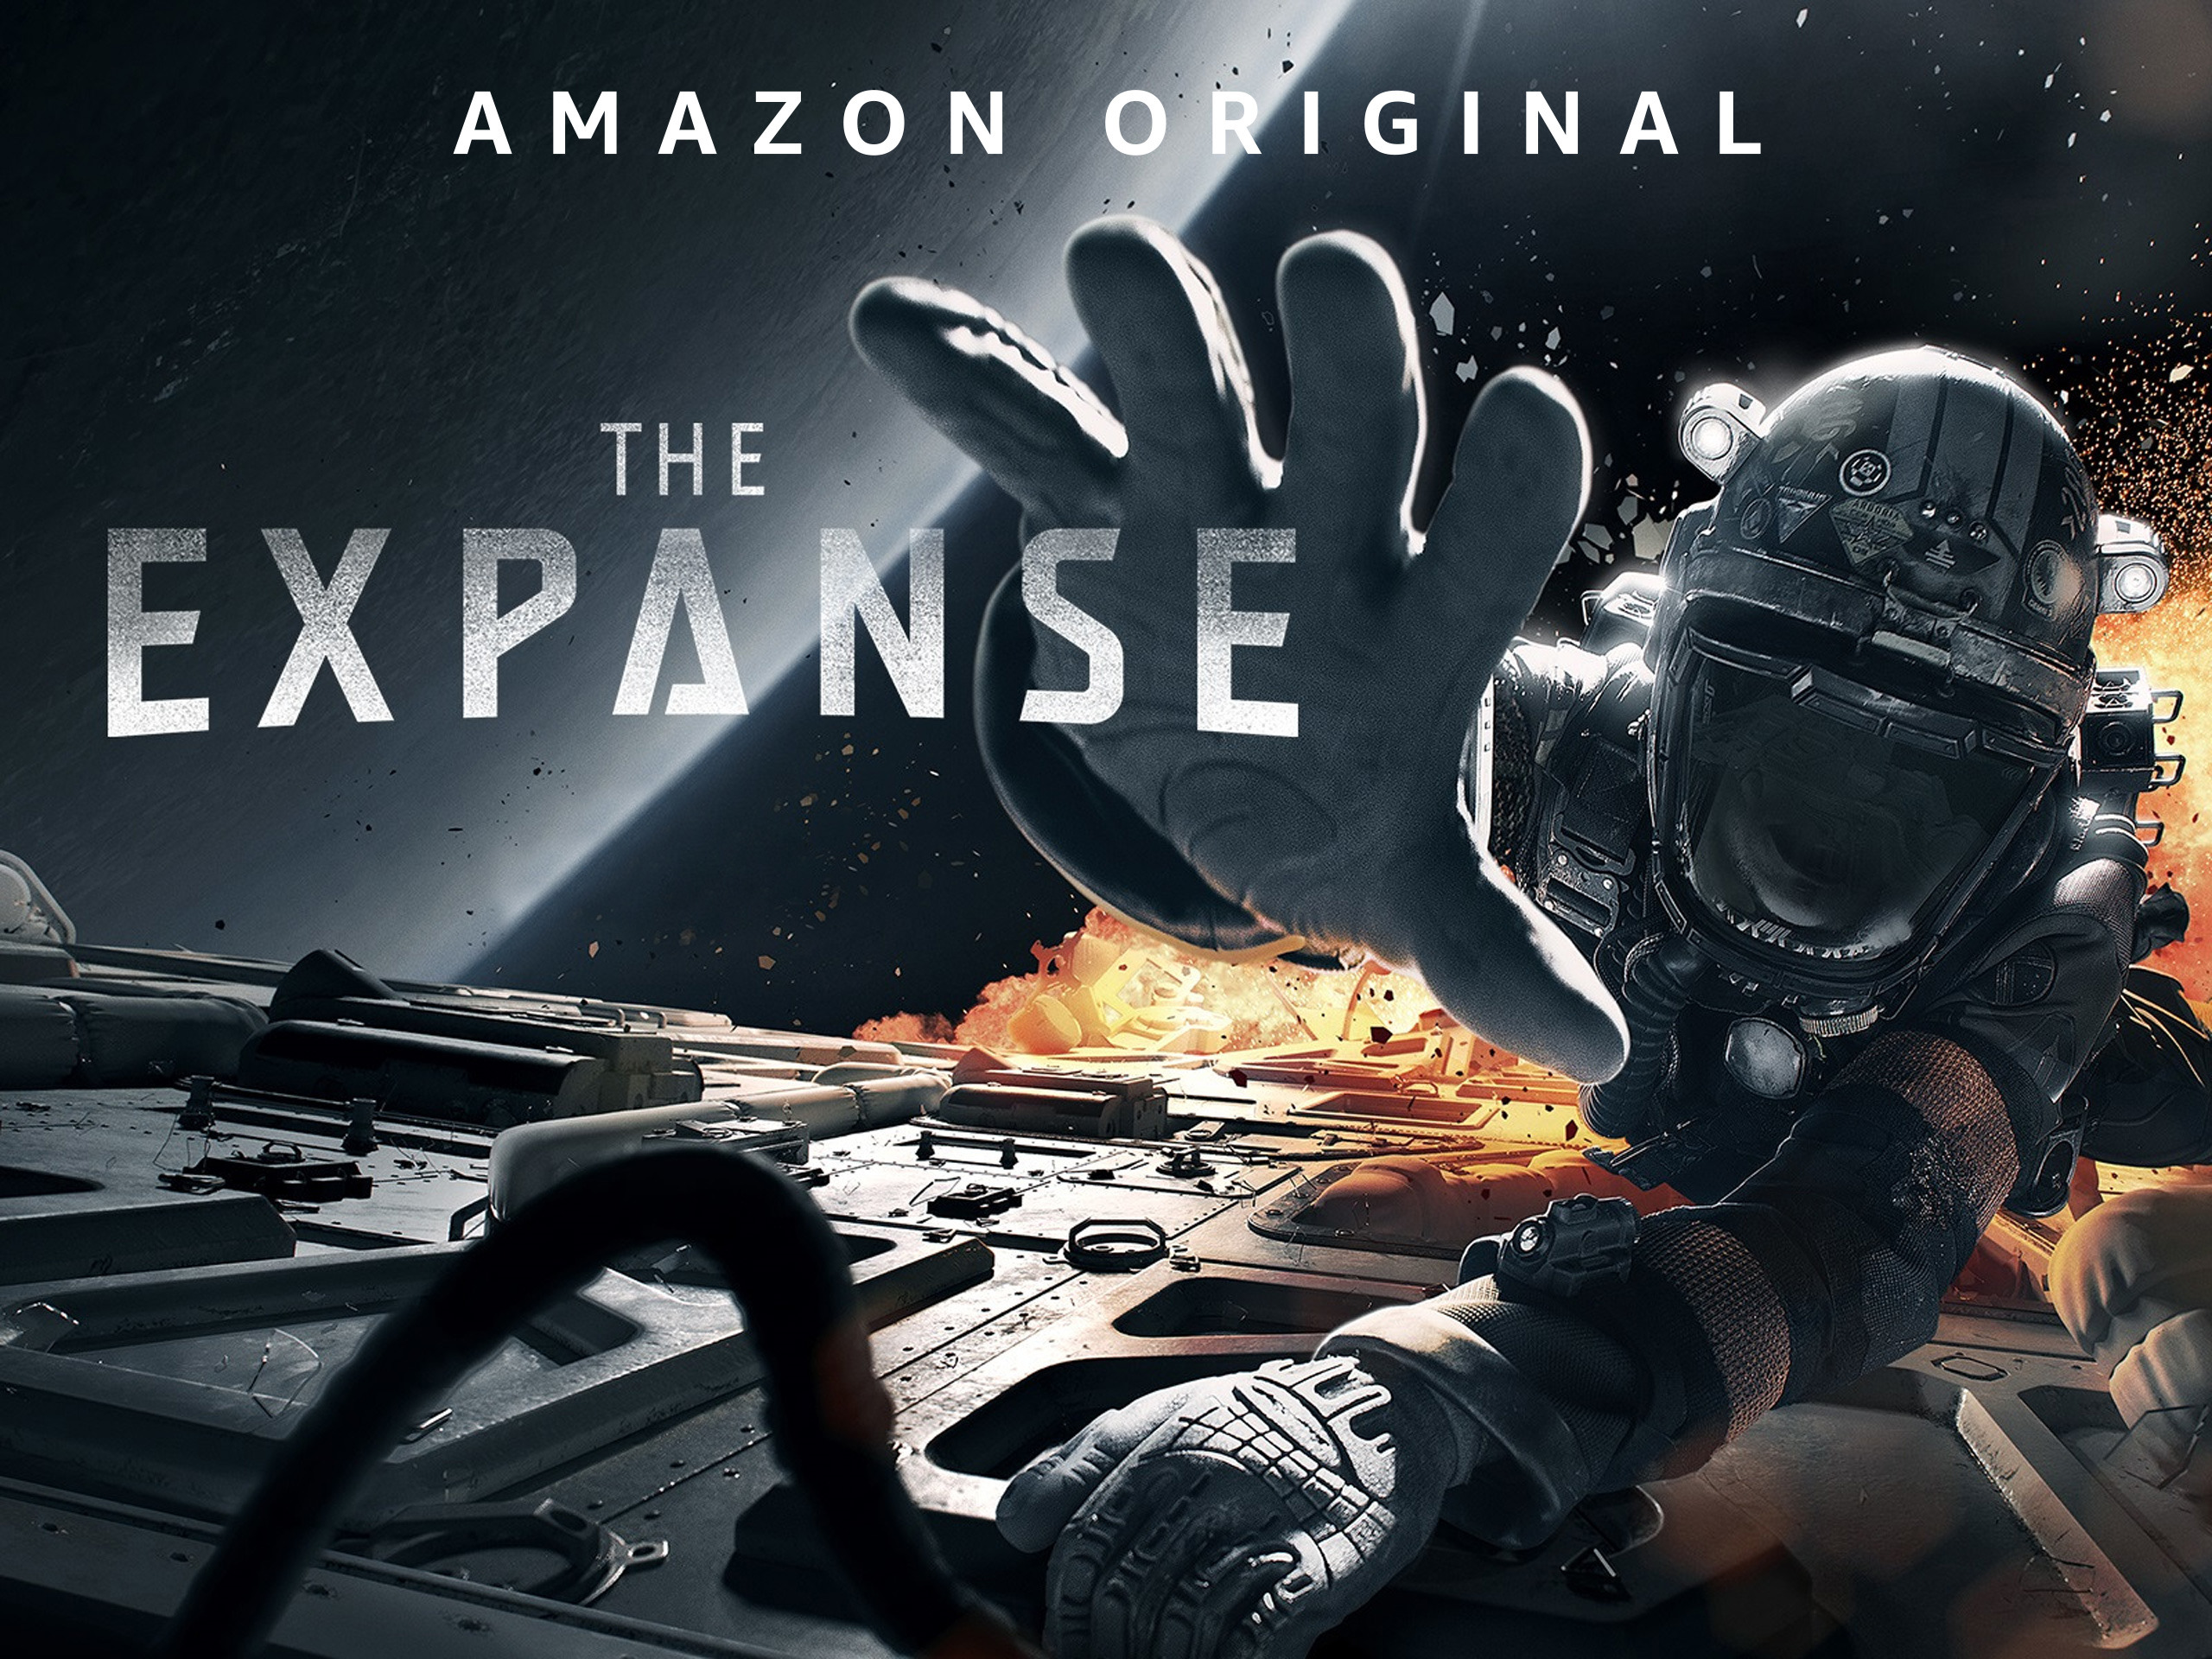 Prime Video: The Expanse - Season 2